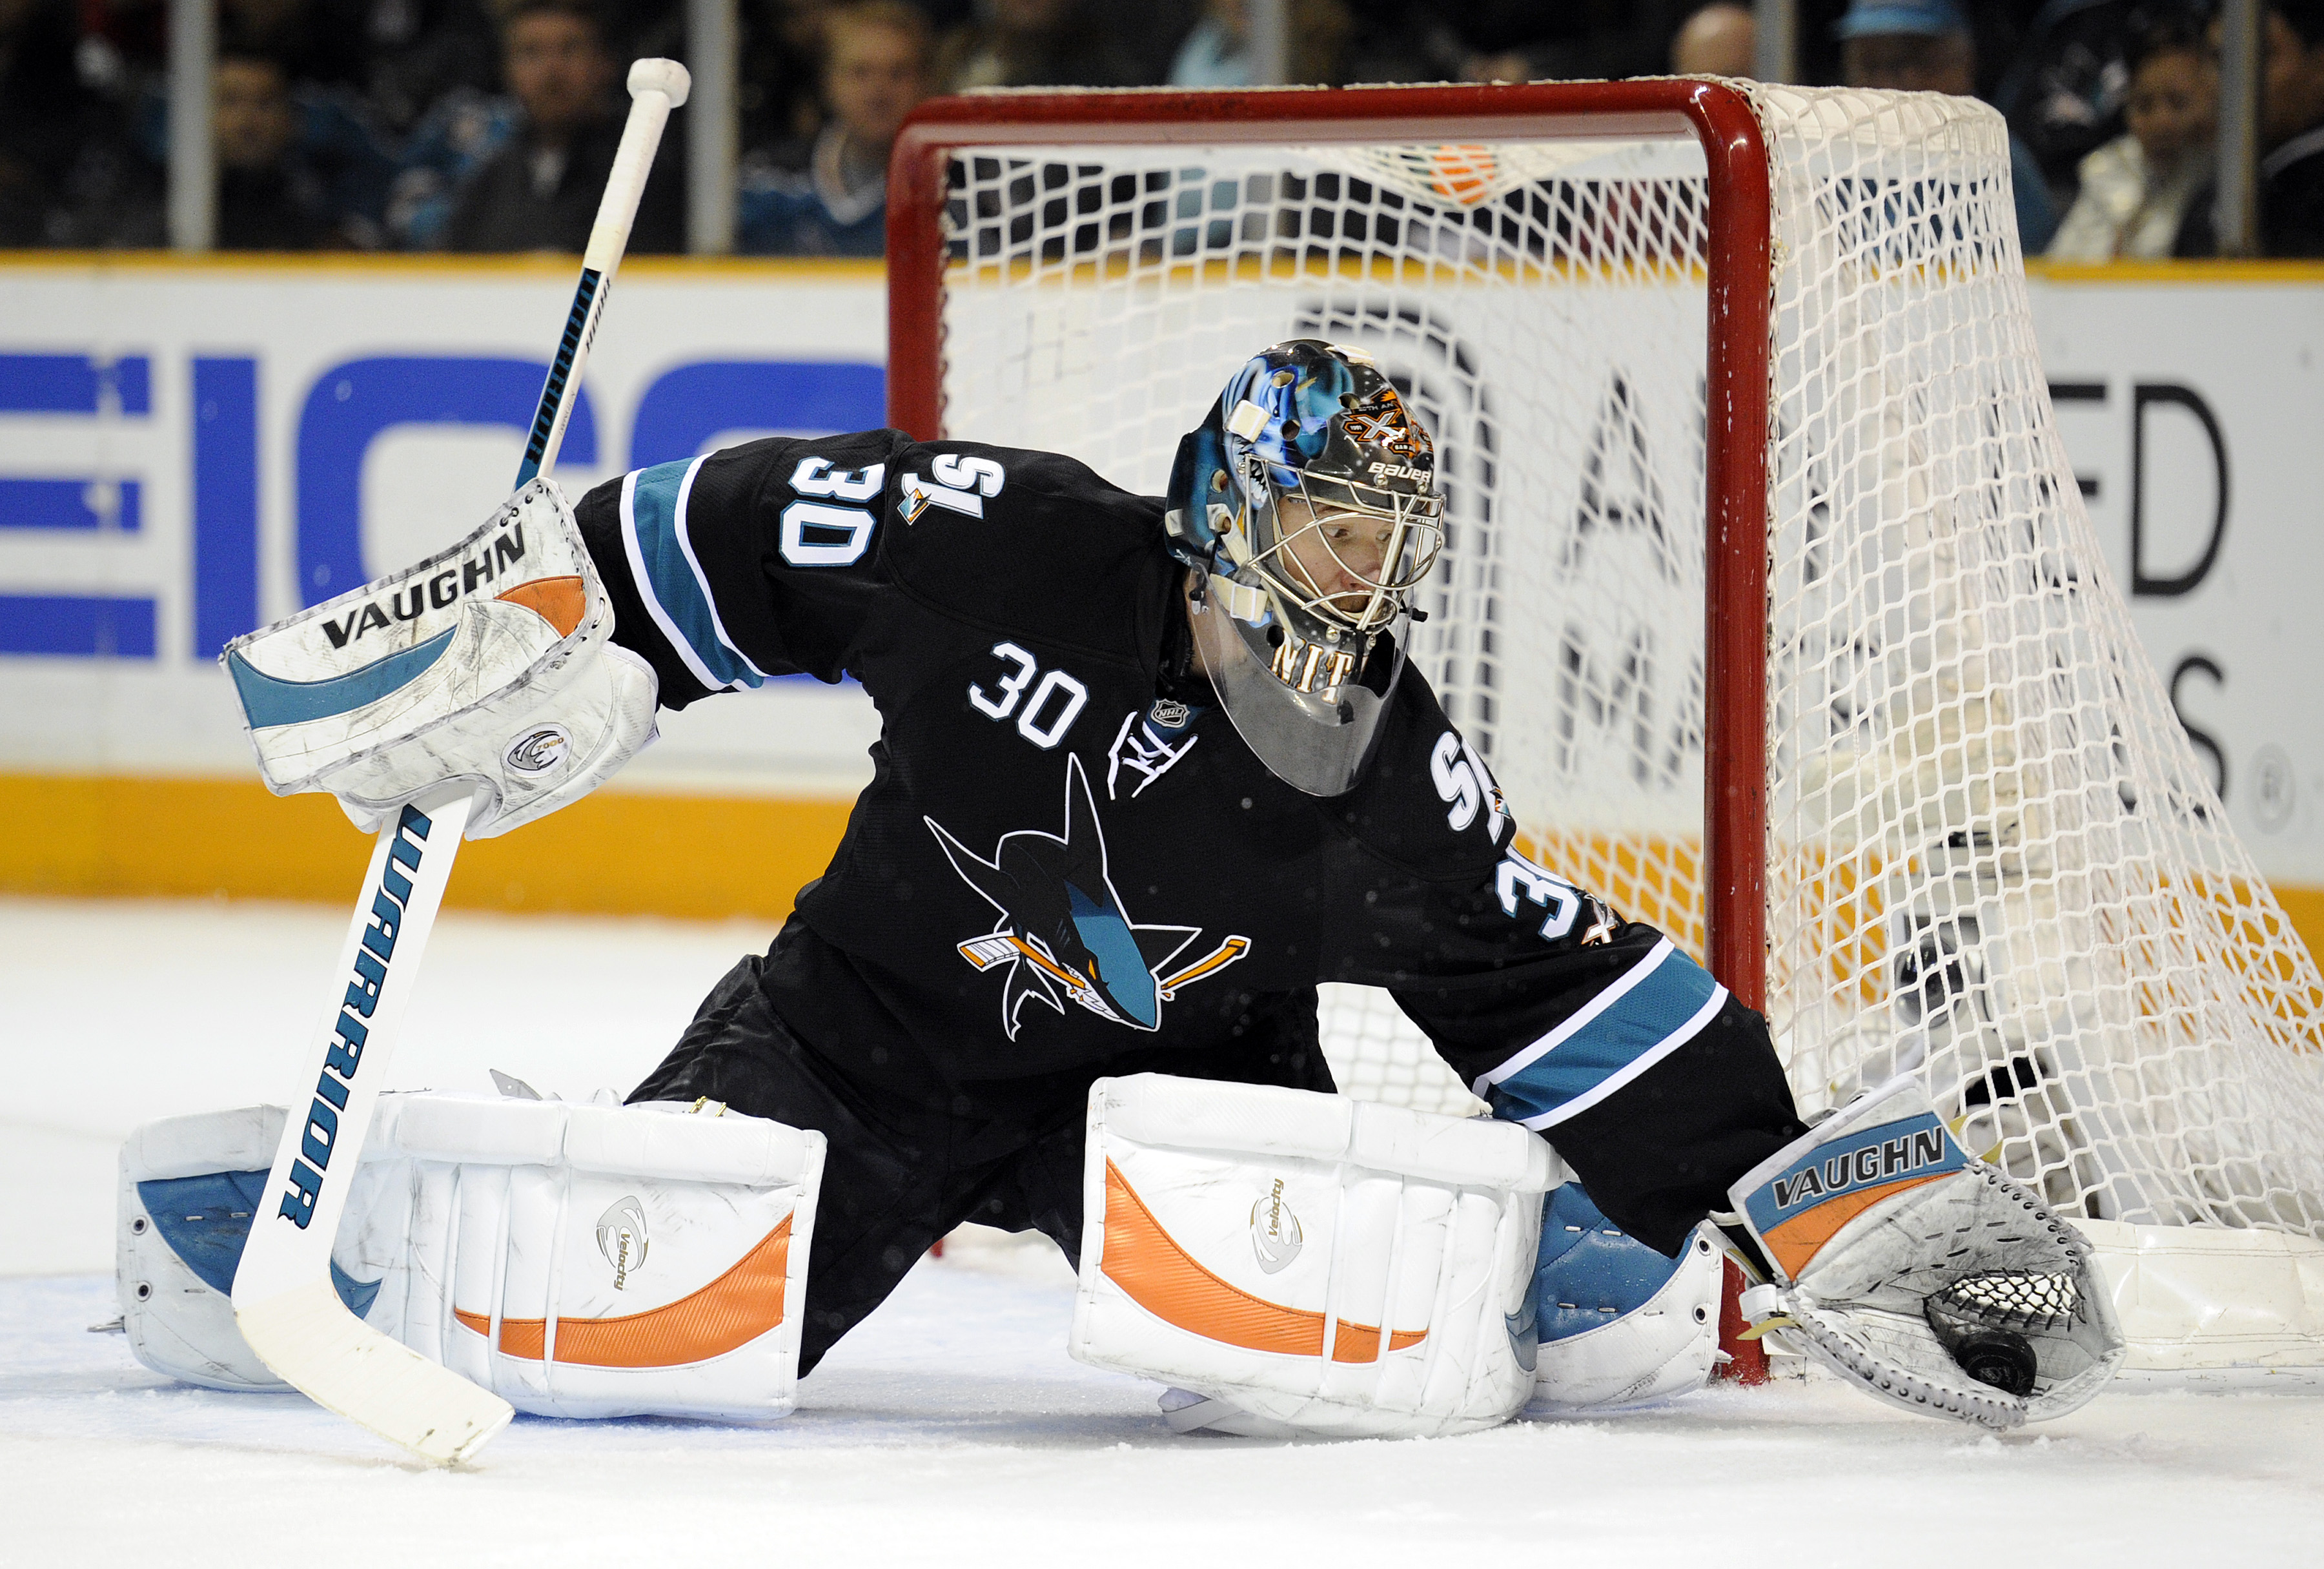 SAN JOSE, CA - JANUARY 6: Goalie Antero Nittymaki #30 of the San Jose Sharks make a save against the Buffalo Sabres during an NHL hockey game at the HP Pavilion on January 6, 2011 in San Jose, California. (Photo by Thearon W. Henderson/Getty Images)